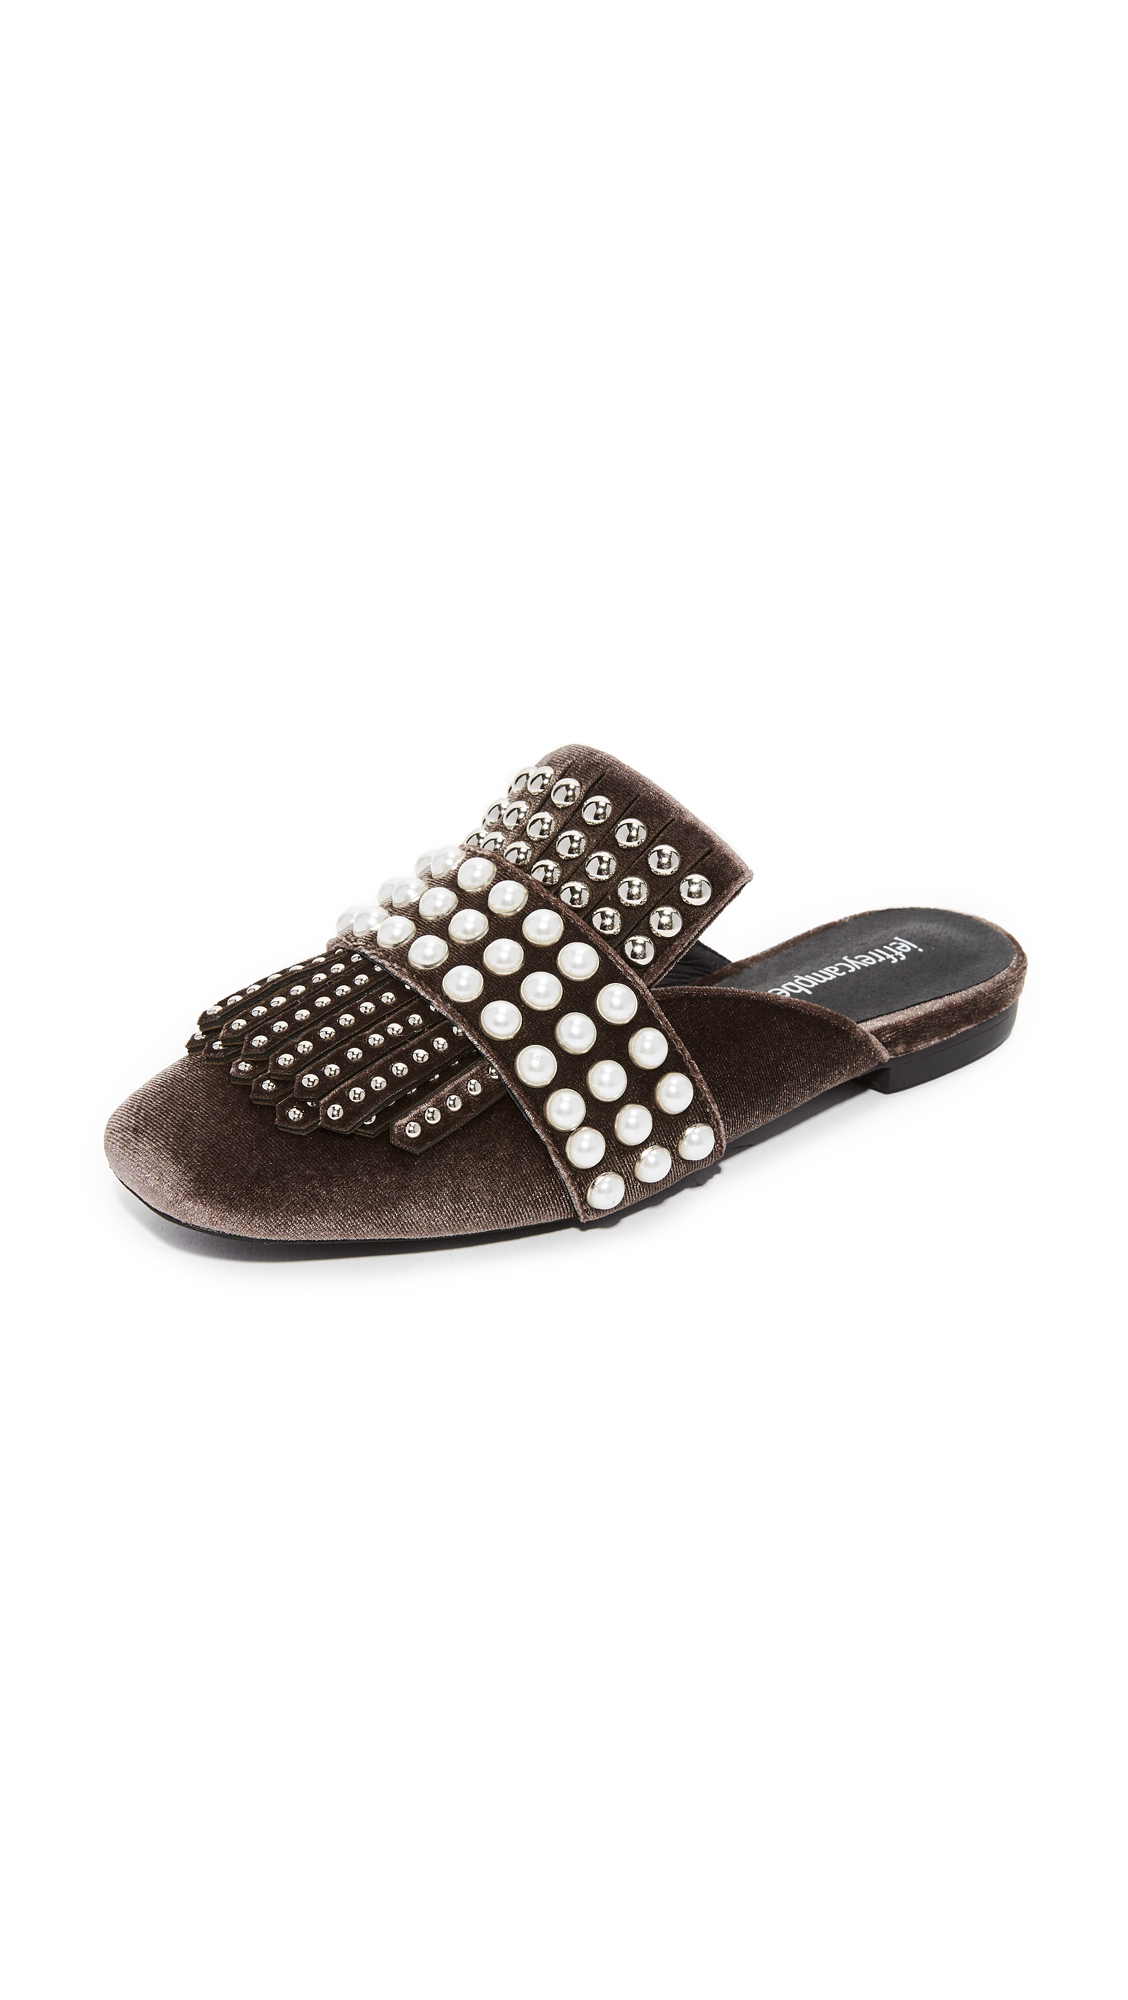 Jeffrey Campbell Ravis Tassle Slip On Mules - Brown